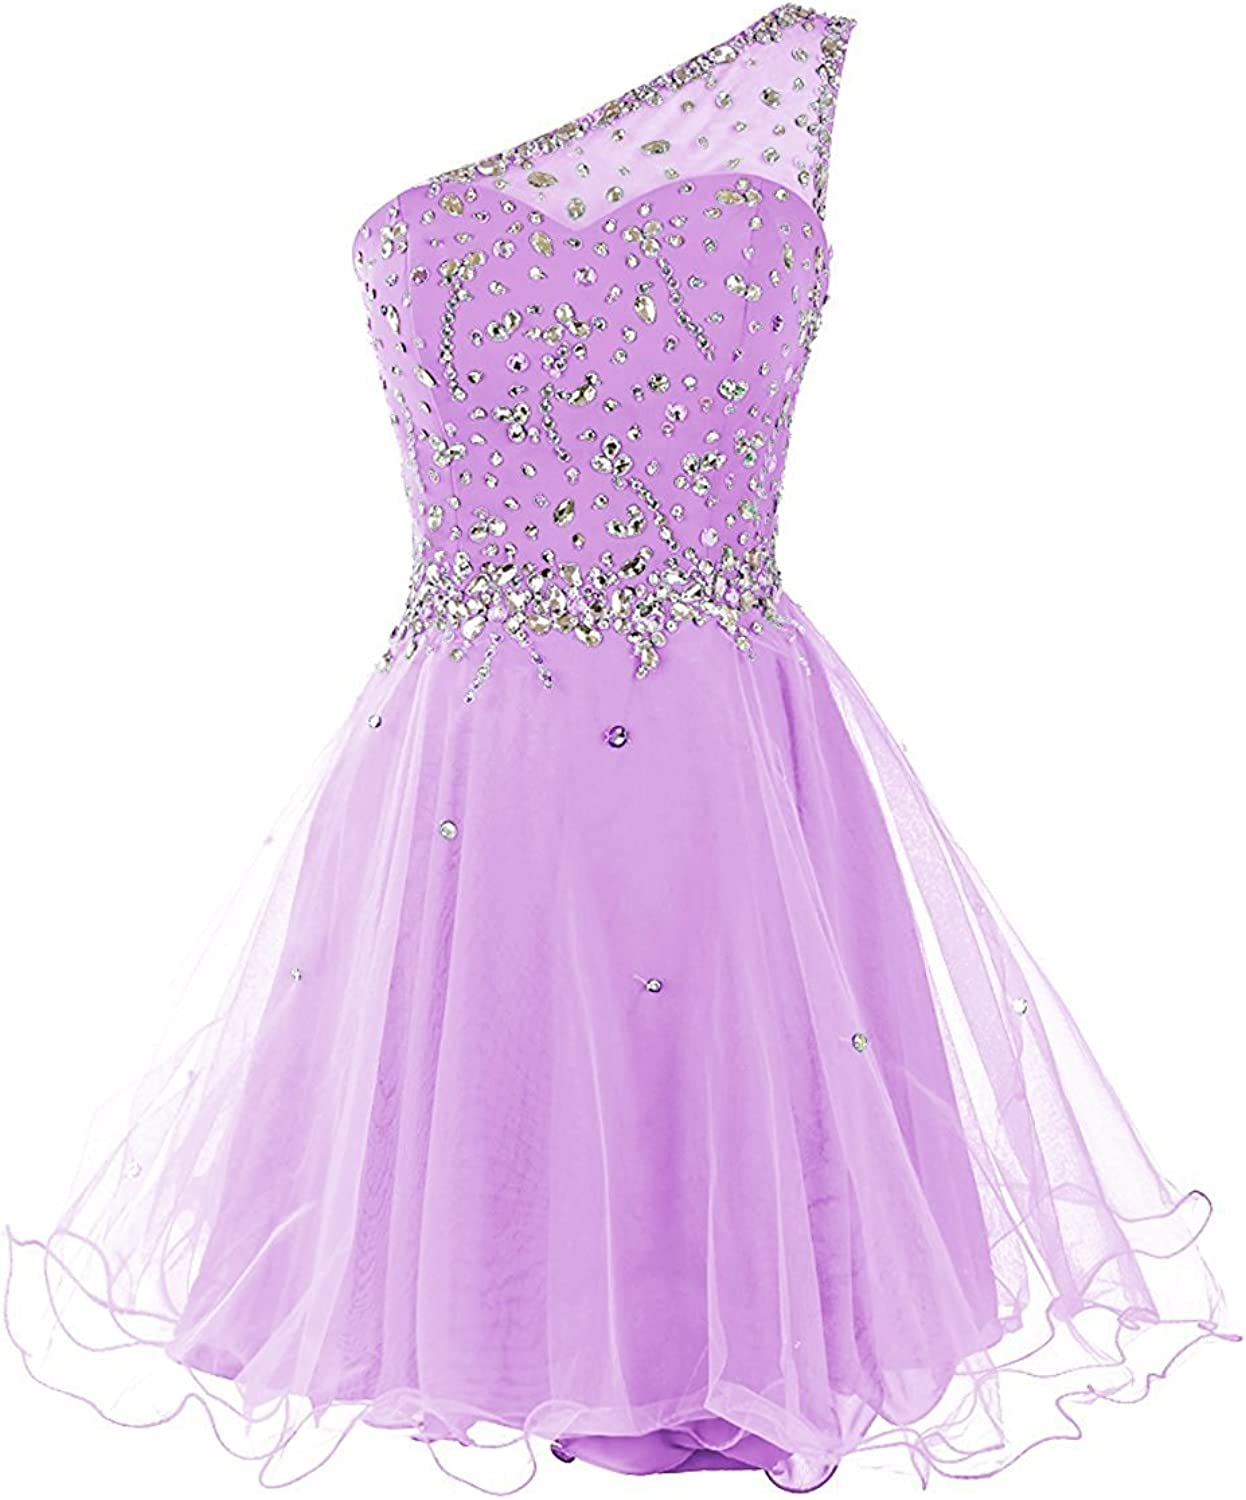 YanLian Short One Shoulder Prom Dresses Tulle Homecoming Dress with Beads YL101